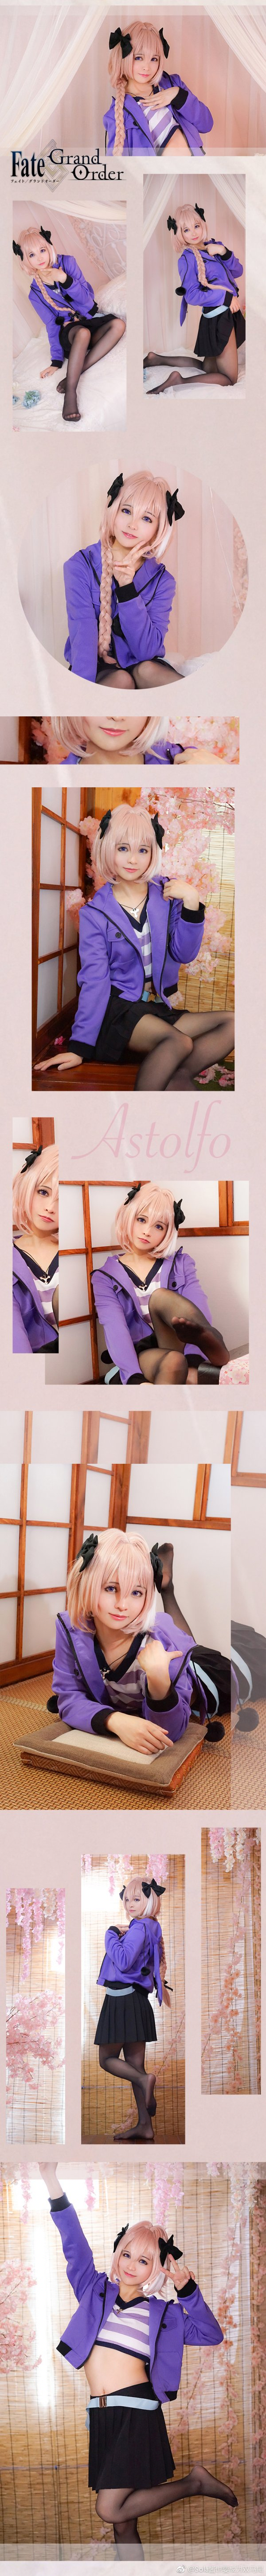 Astolfo Cosplay by Sola酱也要成为双马尾